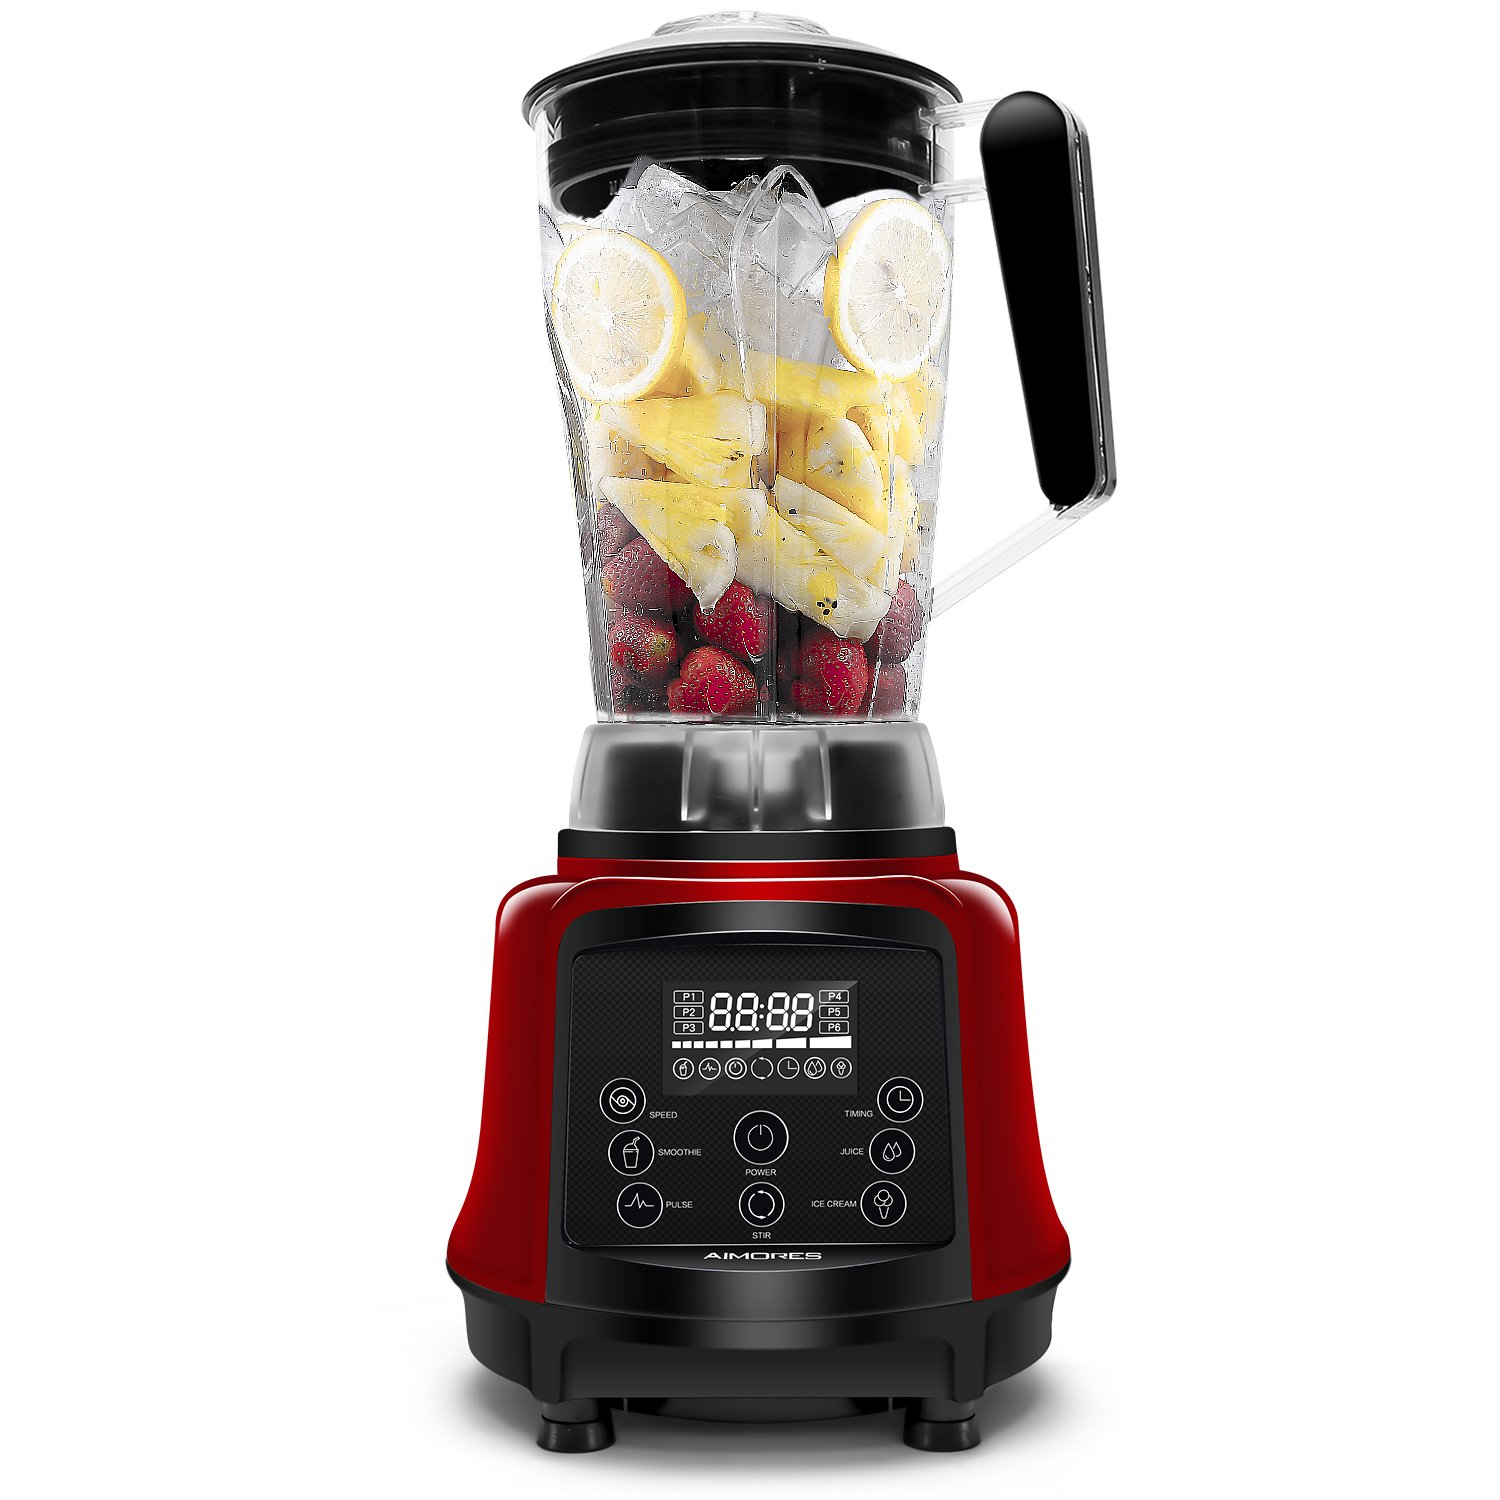 Aimores Commercial Blender for Shakes and Smoothies, Food Processor, 3-in-1 75oz High Speed Programmed Juice Blender, Smoothie Maker for Ice, 6 Sharp Blades, with Tamper & Recipe, ETL/FDA (Red)